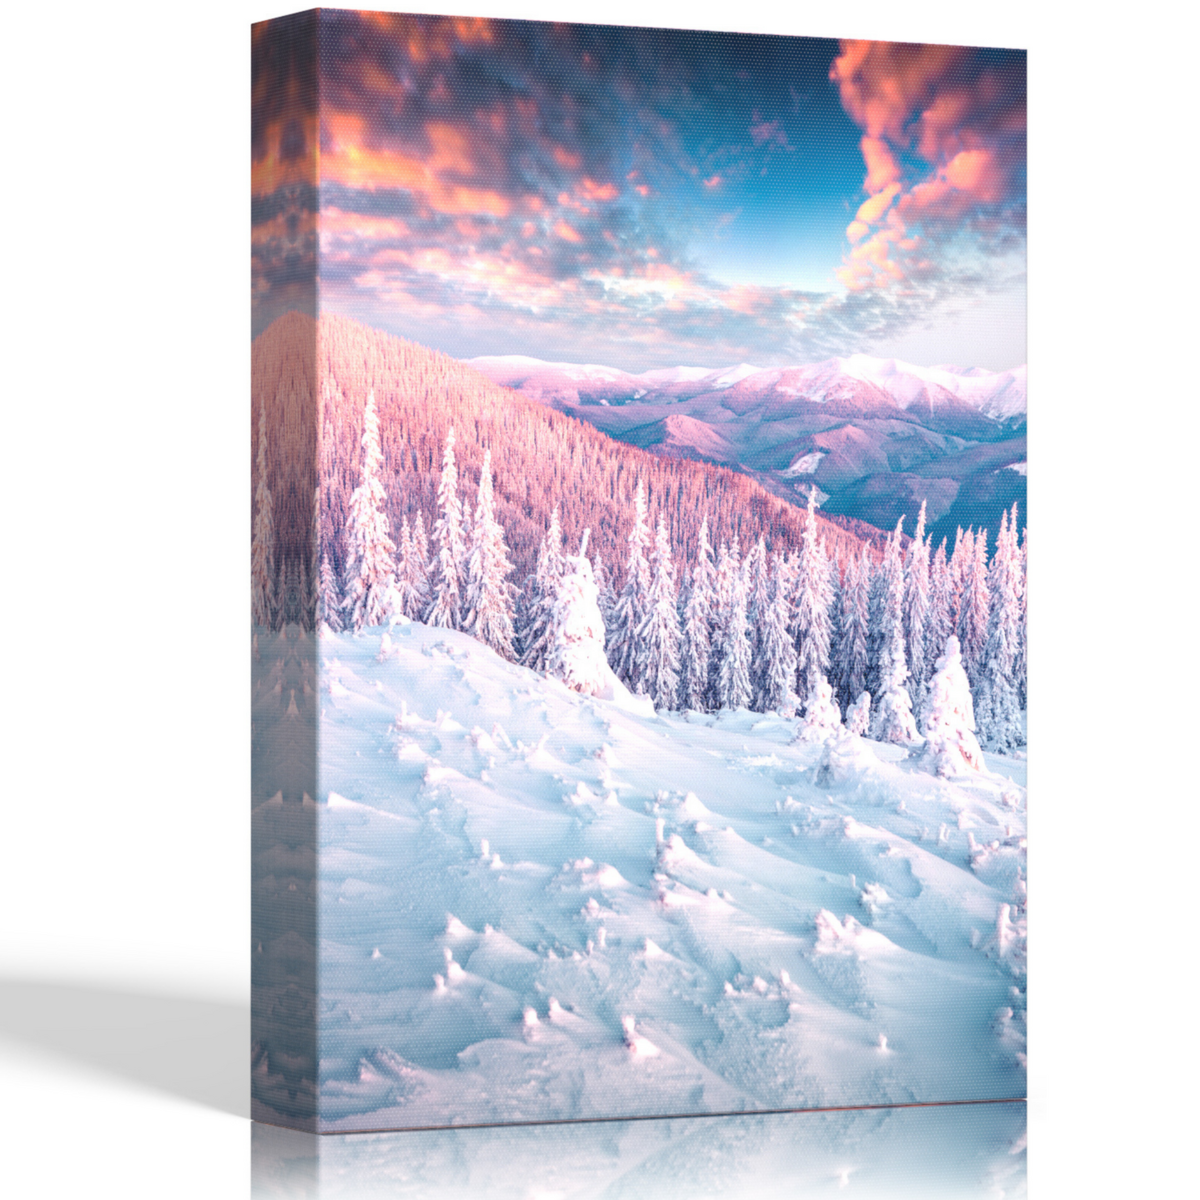 Canvas Wall Art - Mountain Forest Wall Art, Bathroom Pictures, Office Wall Art, Stretched Framed Wall Decor, Nature Prints that is Ready to Hang for Bedroom, Kitchen, Hallway, Decoracion Para Baños